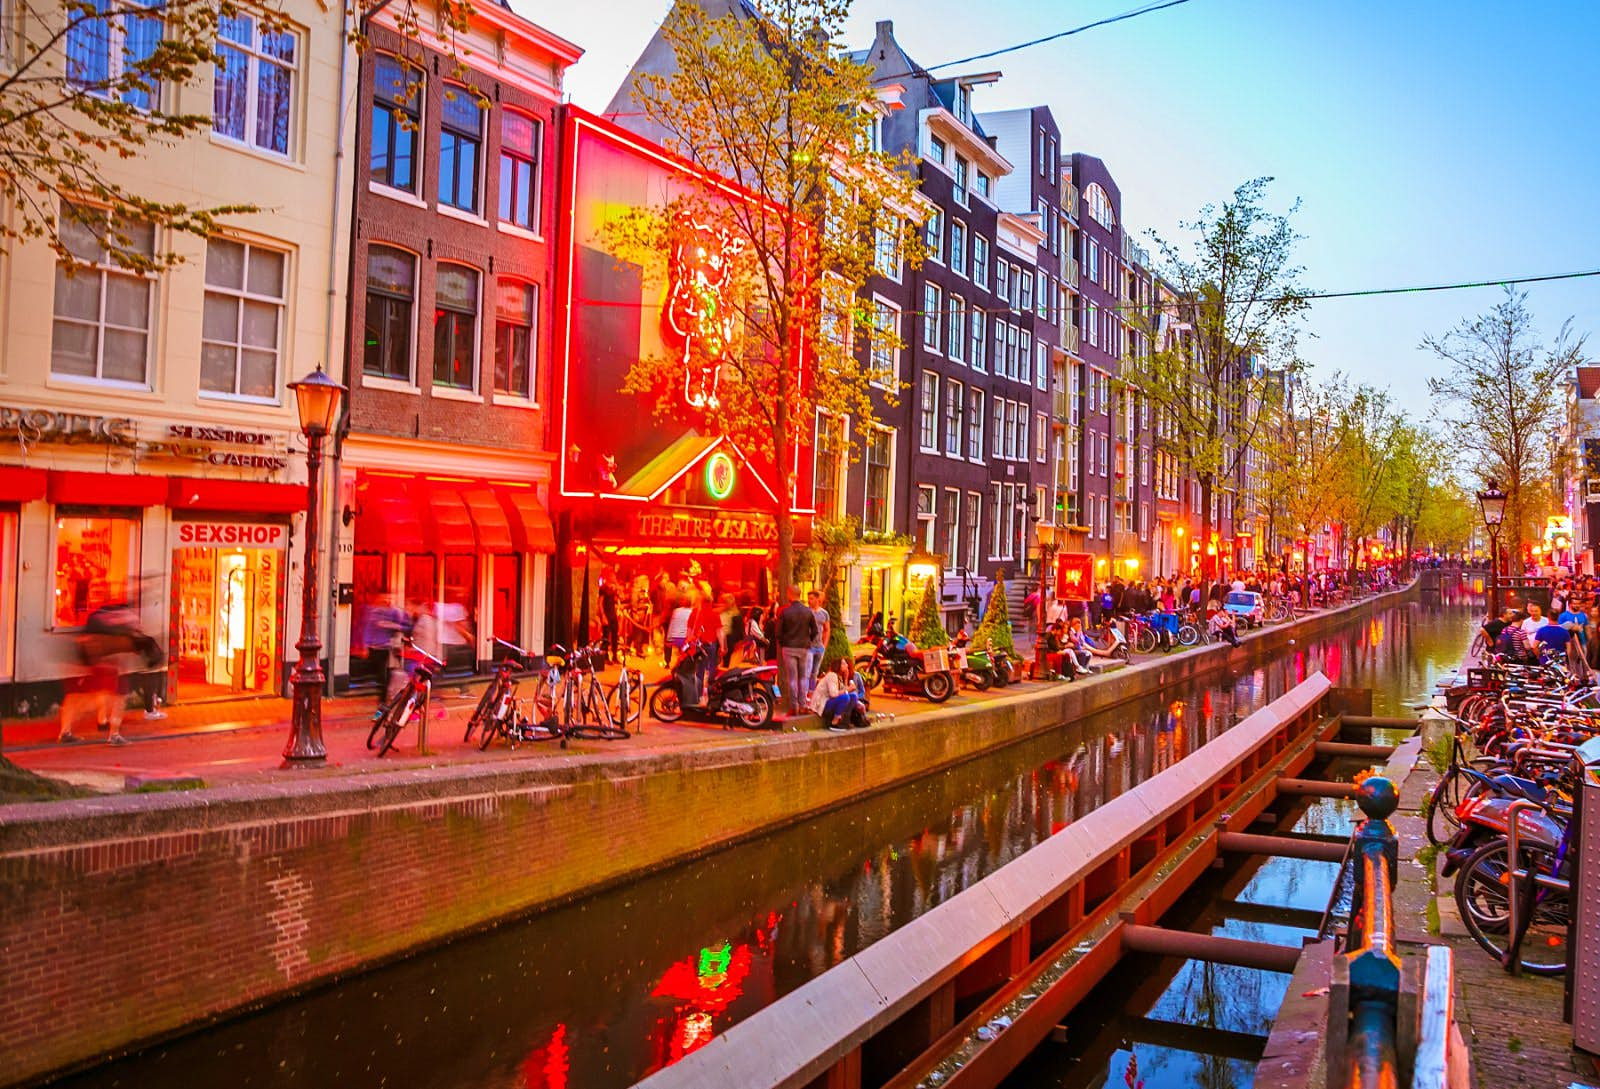 A guide to Amsterdams Red Light District - Lonely Planet